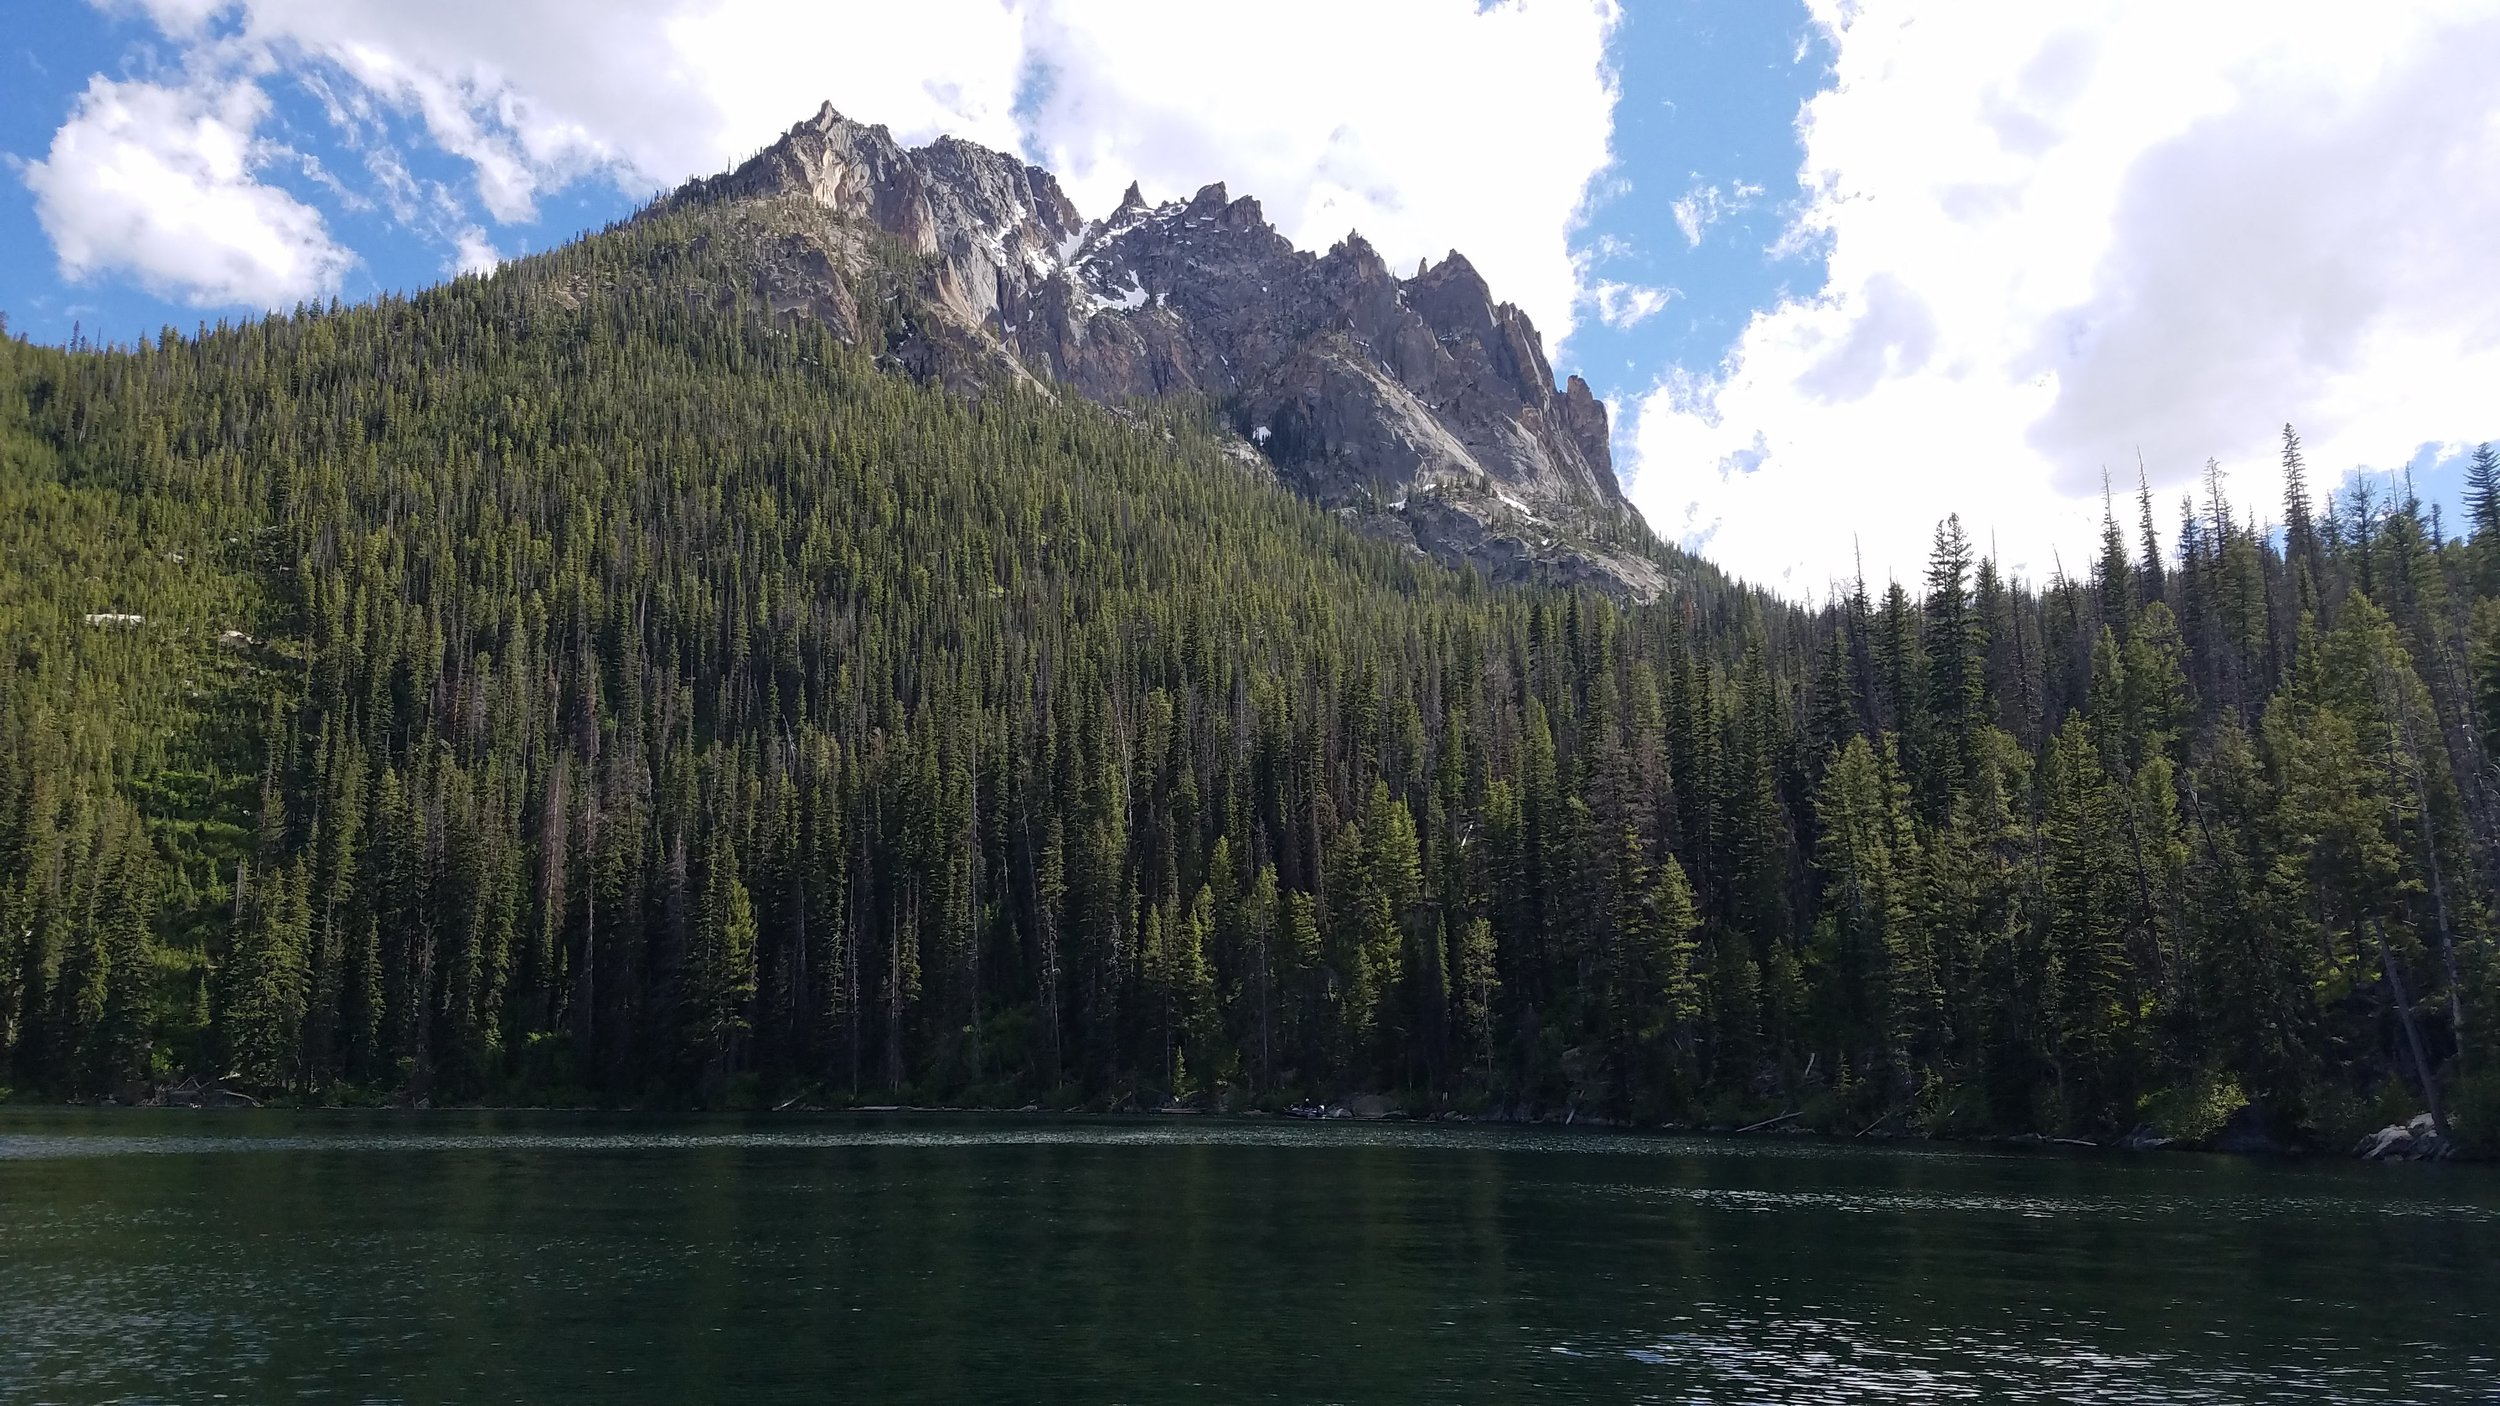 Views from the water, Redfish Lake, Idaho